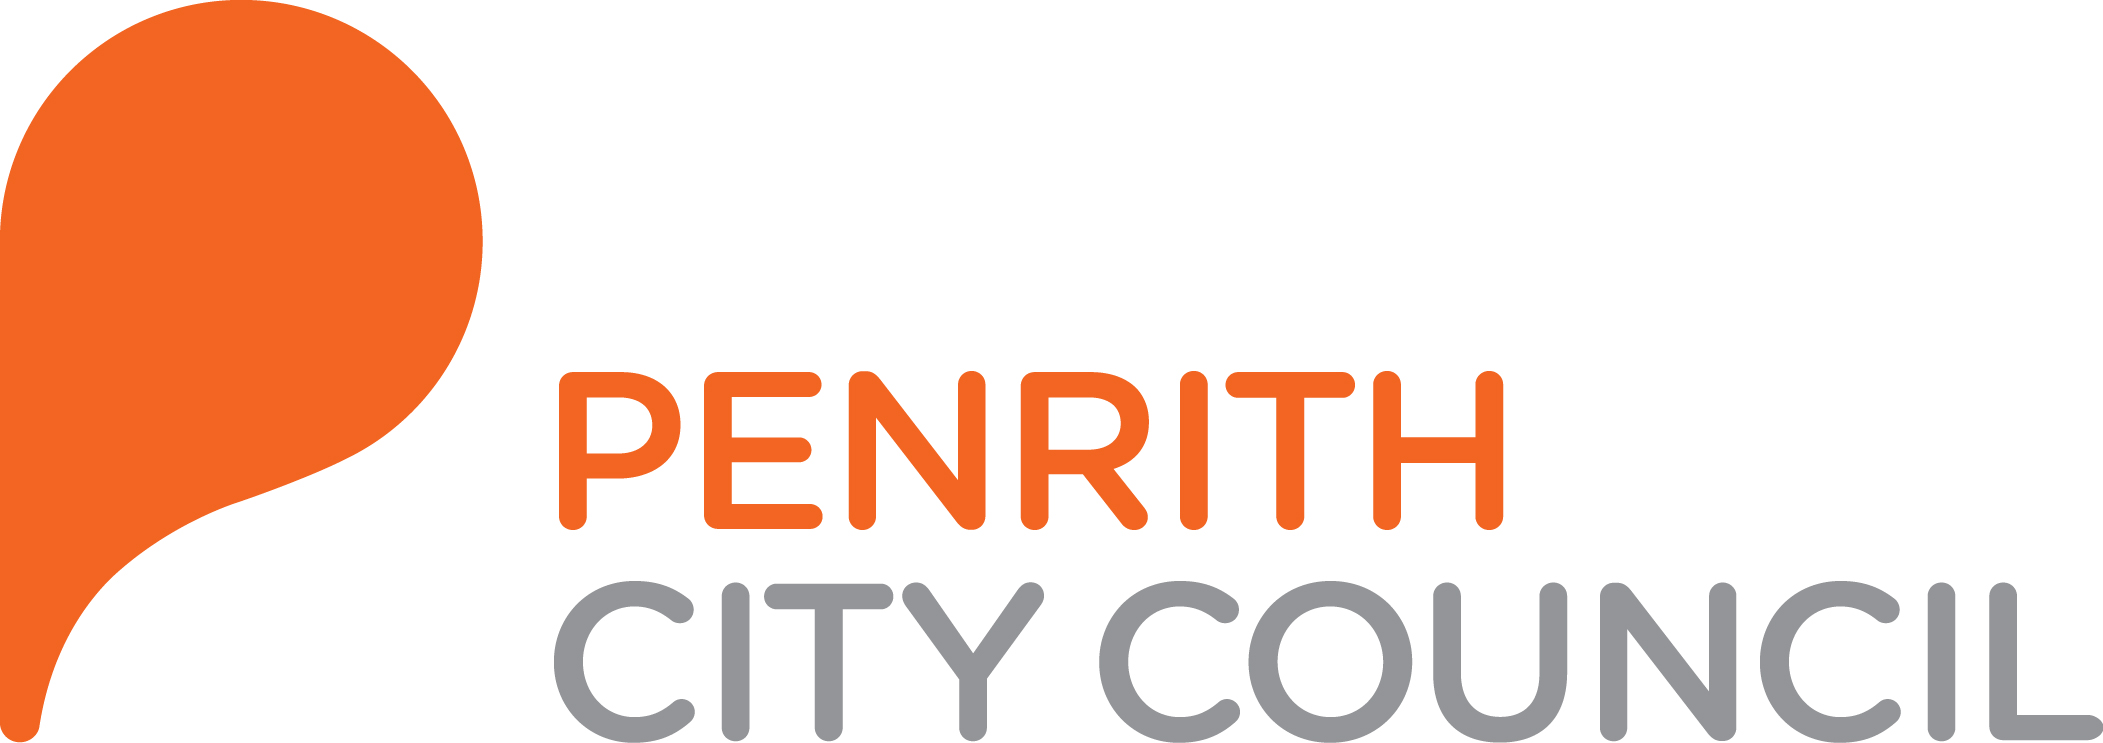 Penrith City Council Logo.jpg